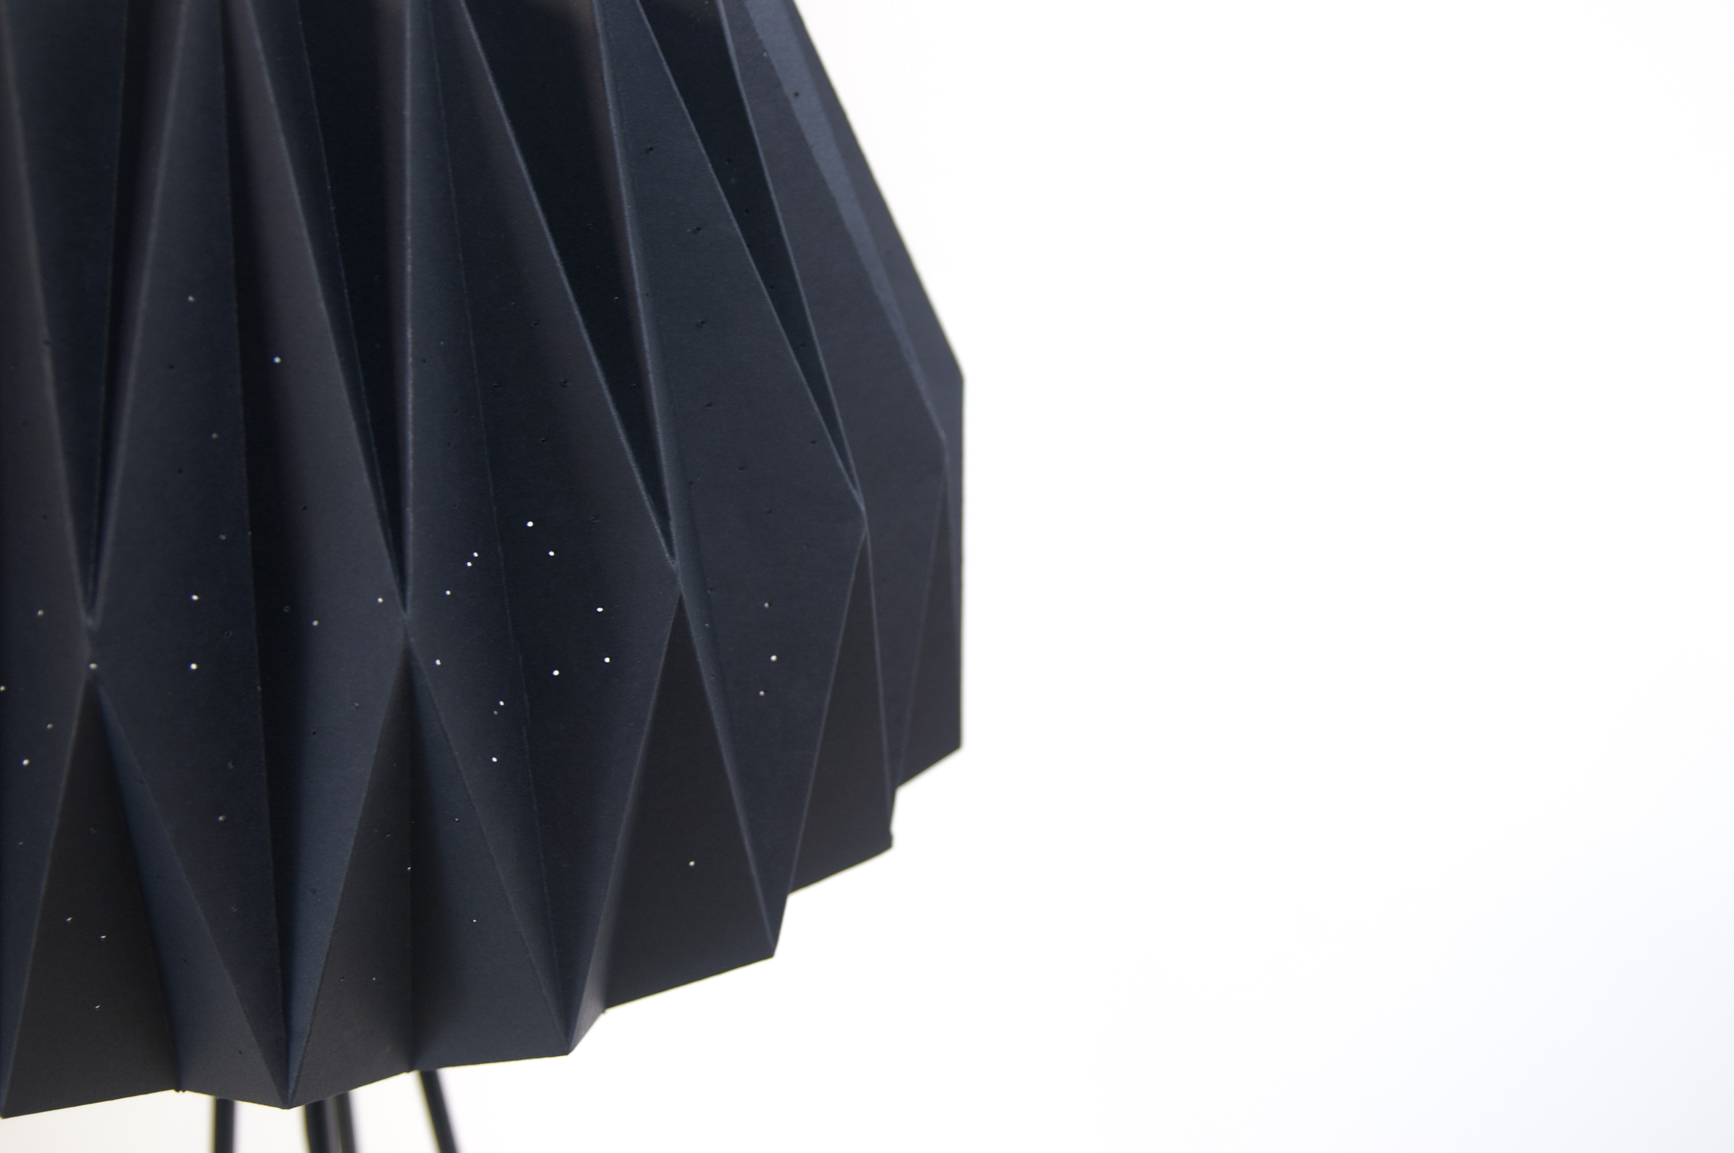 constellation origami lamps detail